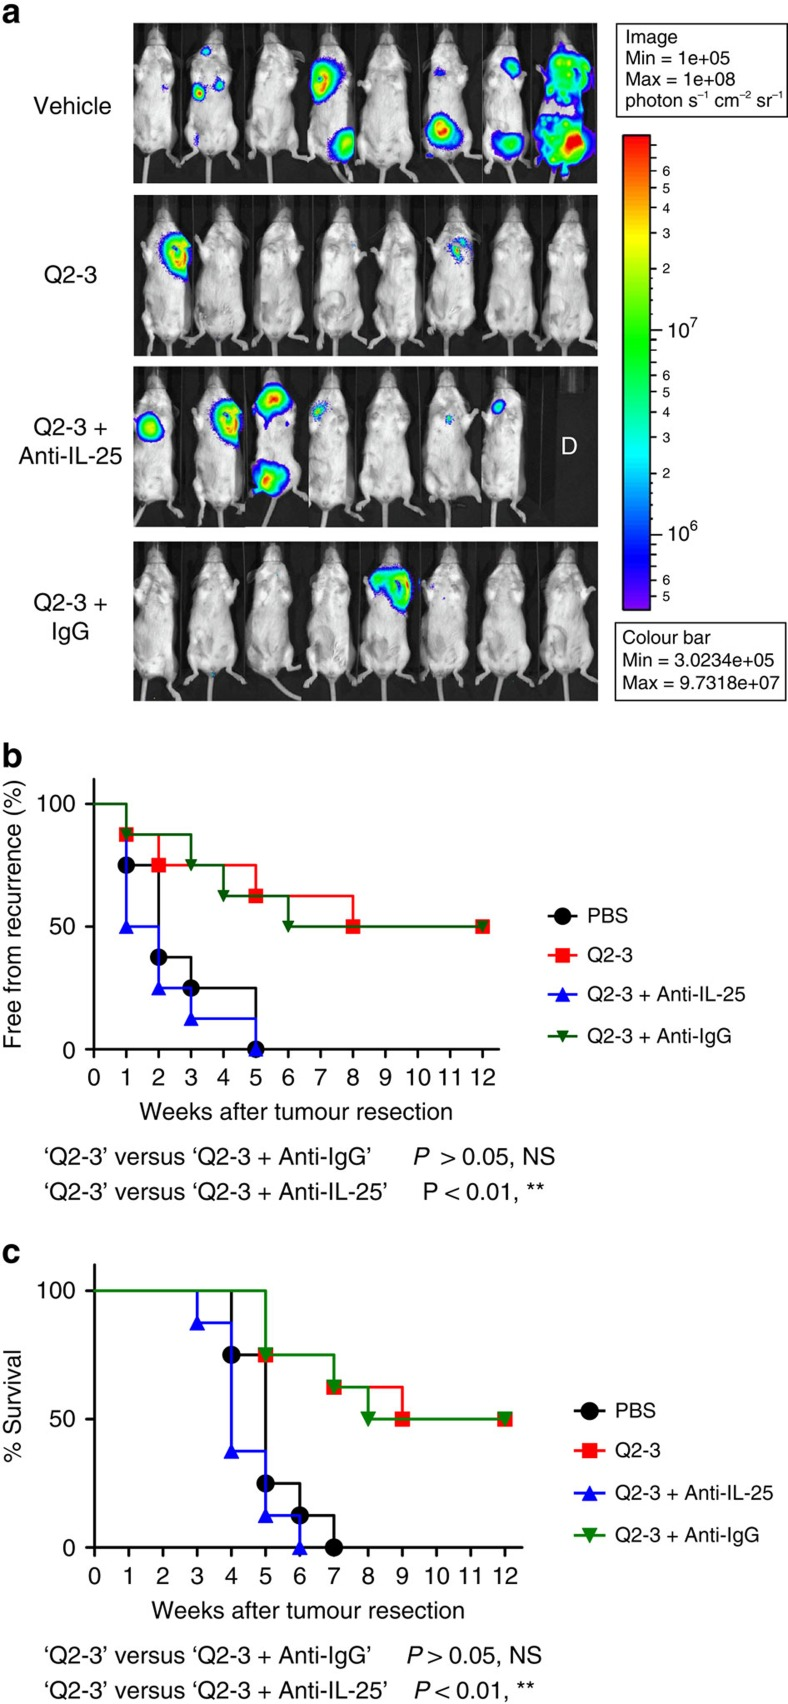 In vivo neutralization of IL-25 activity can effectively invalidate the anti-metastatic activity of Q2-3. ( a ) Representative bioluminescent images of tumour-resected mice ( n =8 per group) after in vivo treatment with PBS (0.1% DMSO in saline), Q2-3 (100 μg kg −1 ; 3 injections per week), anti-mouse IL-25 Ab (100 μg per mice; 2 injections per week), Q2-3+IL-25 Ab, or Q2-3+isotype IgG, at 3 weeks post tumour resection. The label 'D' in the photograph denotes the mice died before 3 weeks post tumour resection. ( b ) Quantification of tumour metastasis by measuring luciferase activity photons s −1 cm −2 sr −1 in mice, as revealed along the indicated time course (12 weeks). ( c ) Survival of test mice after different treatments. NS, no significant difference between the 'Q2-3' and 'Q2-3+Anti-IgG' groups. ** P